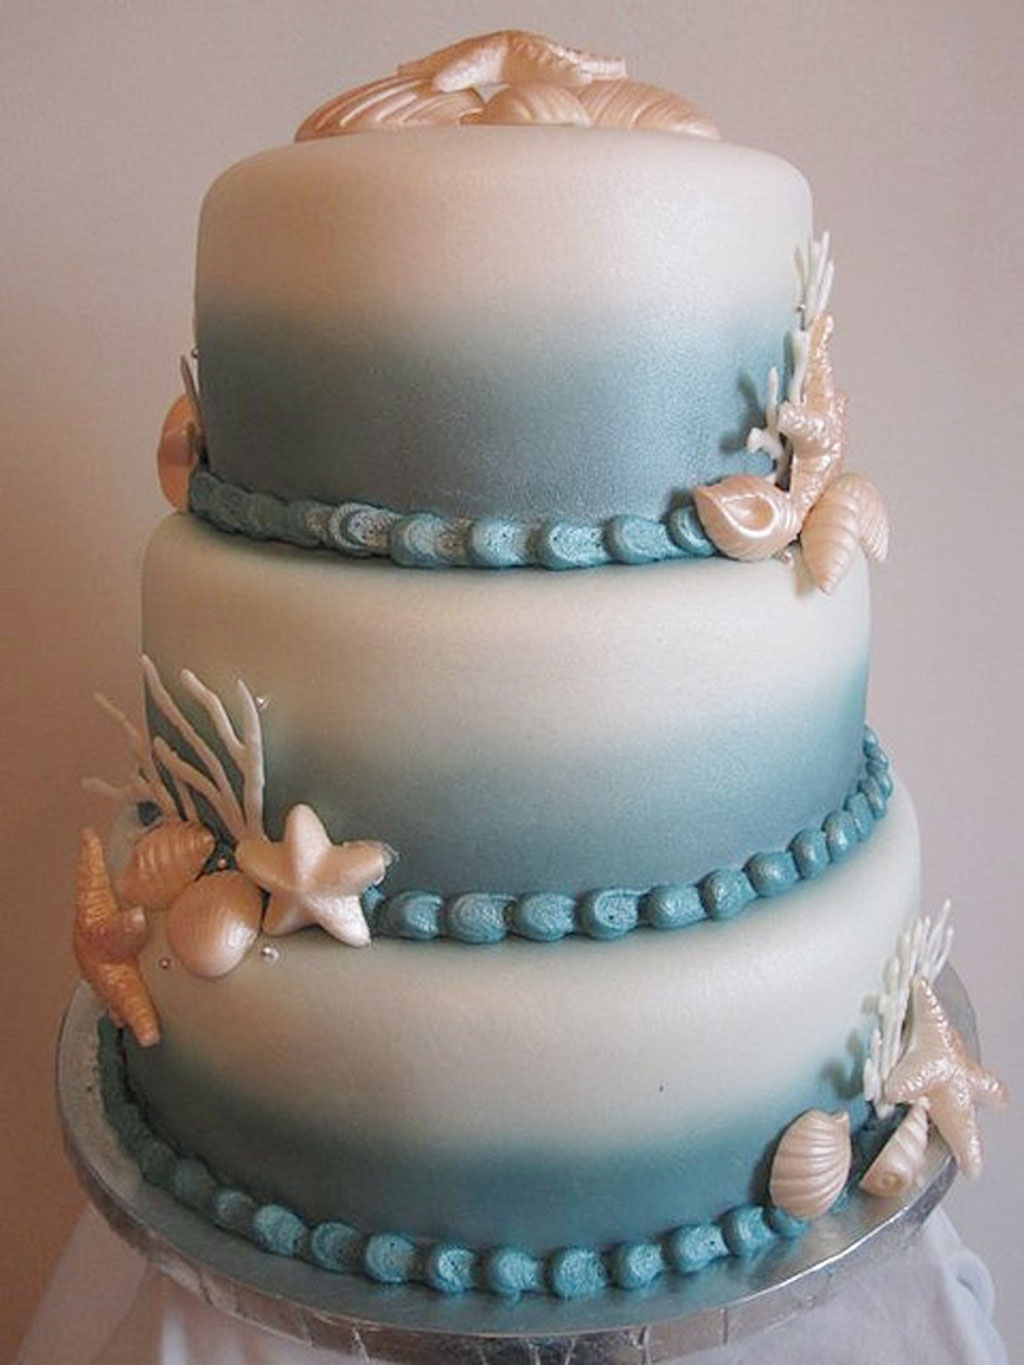 Seashell Wedding Cakes Design Picture In Cake